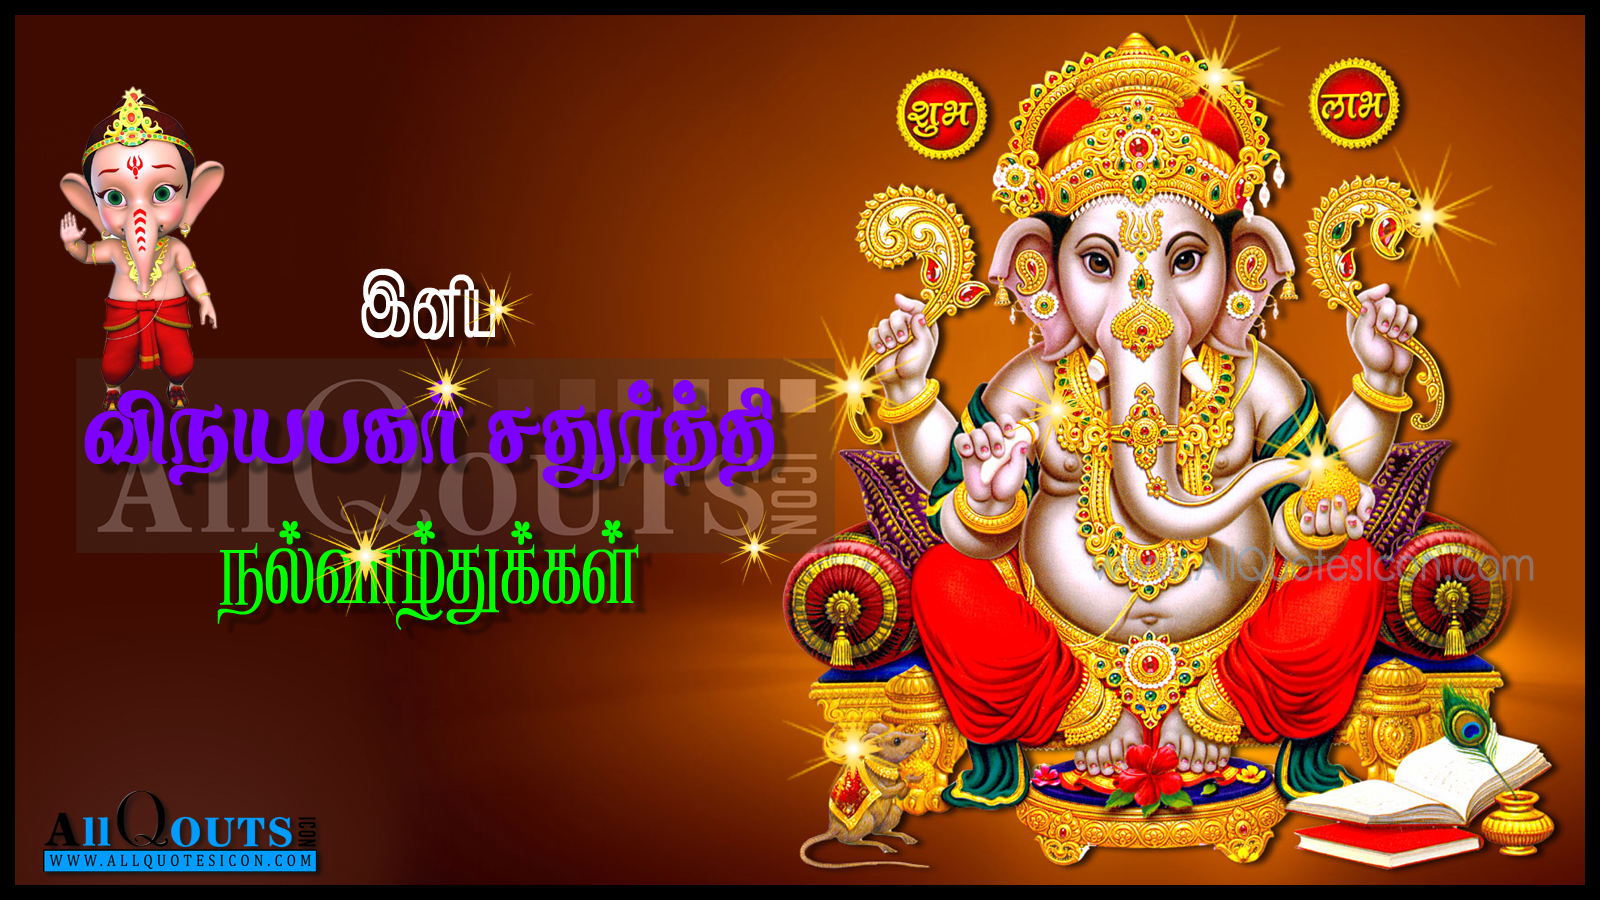 Happy vinayaka chavithi wishes and pictures with nice quotations and ganesh chaturthi widely celebrated in andhrapradesh karnatakavinayaka chavithi quotes in tamil greetings in m4hsunfo